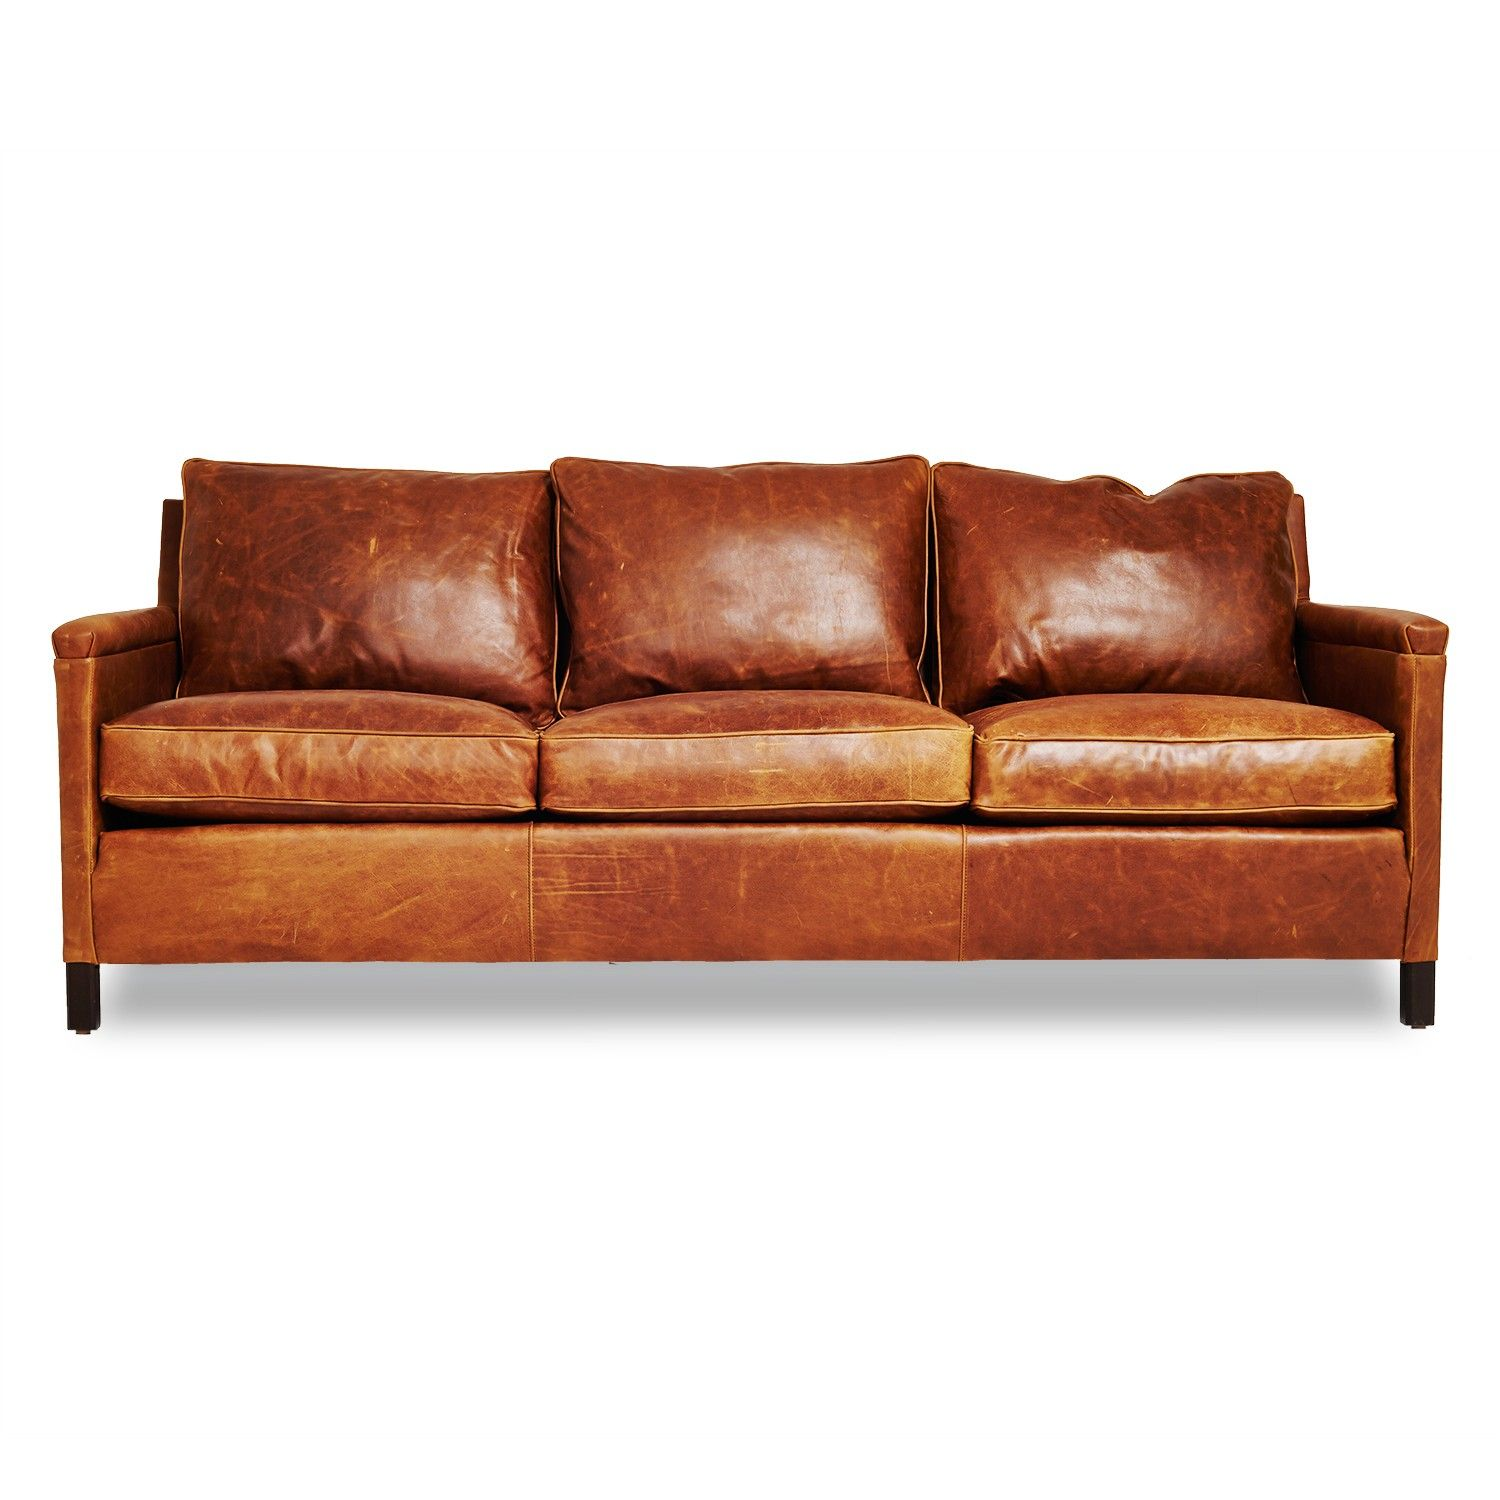 Superb The Heston Gives An Urban Edge To The Classic Leather Sofa, Featuring A  Cognac